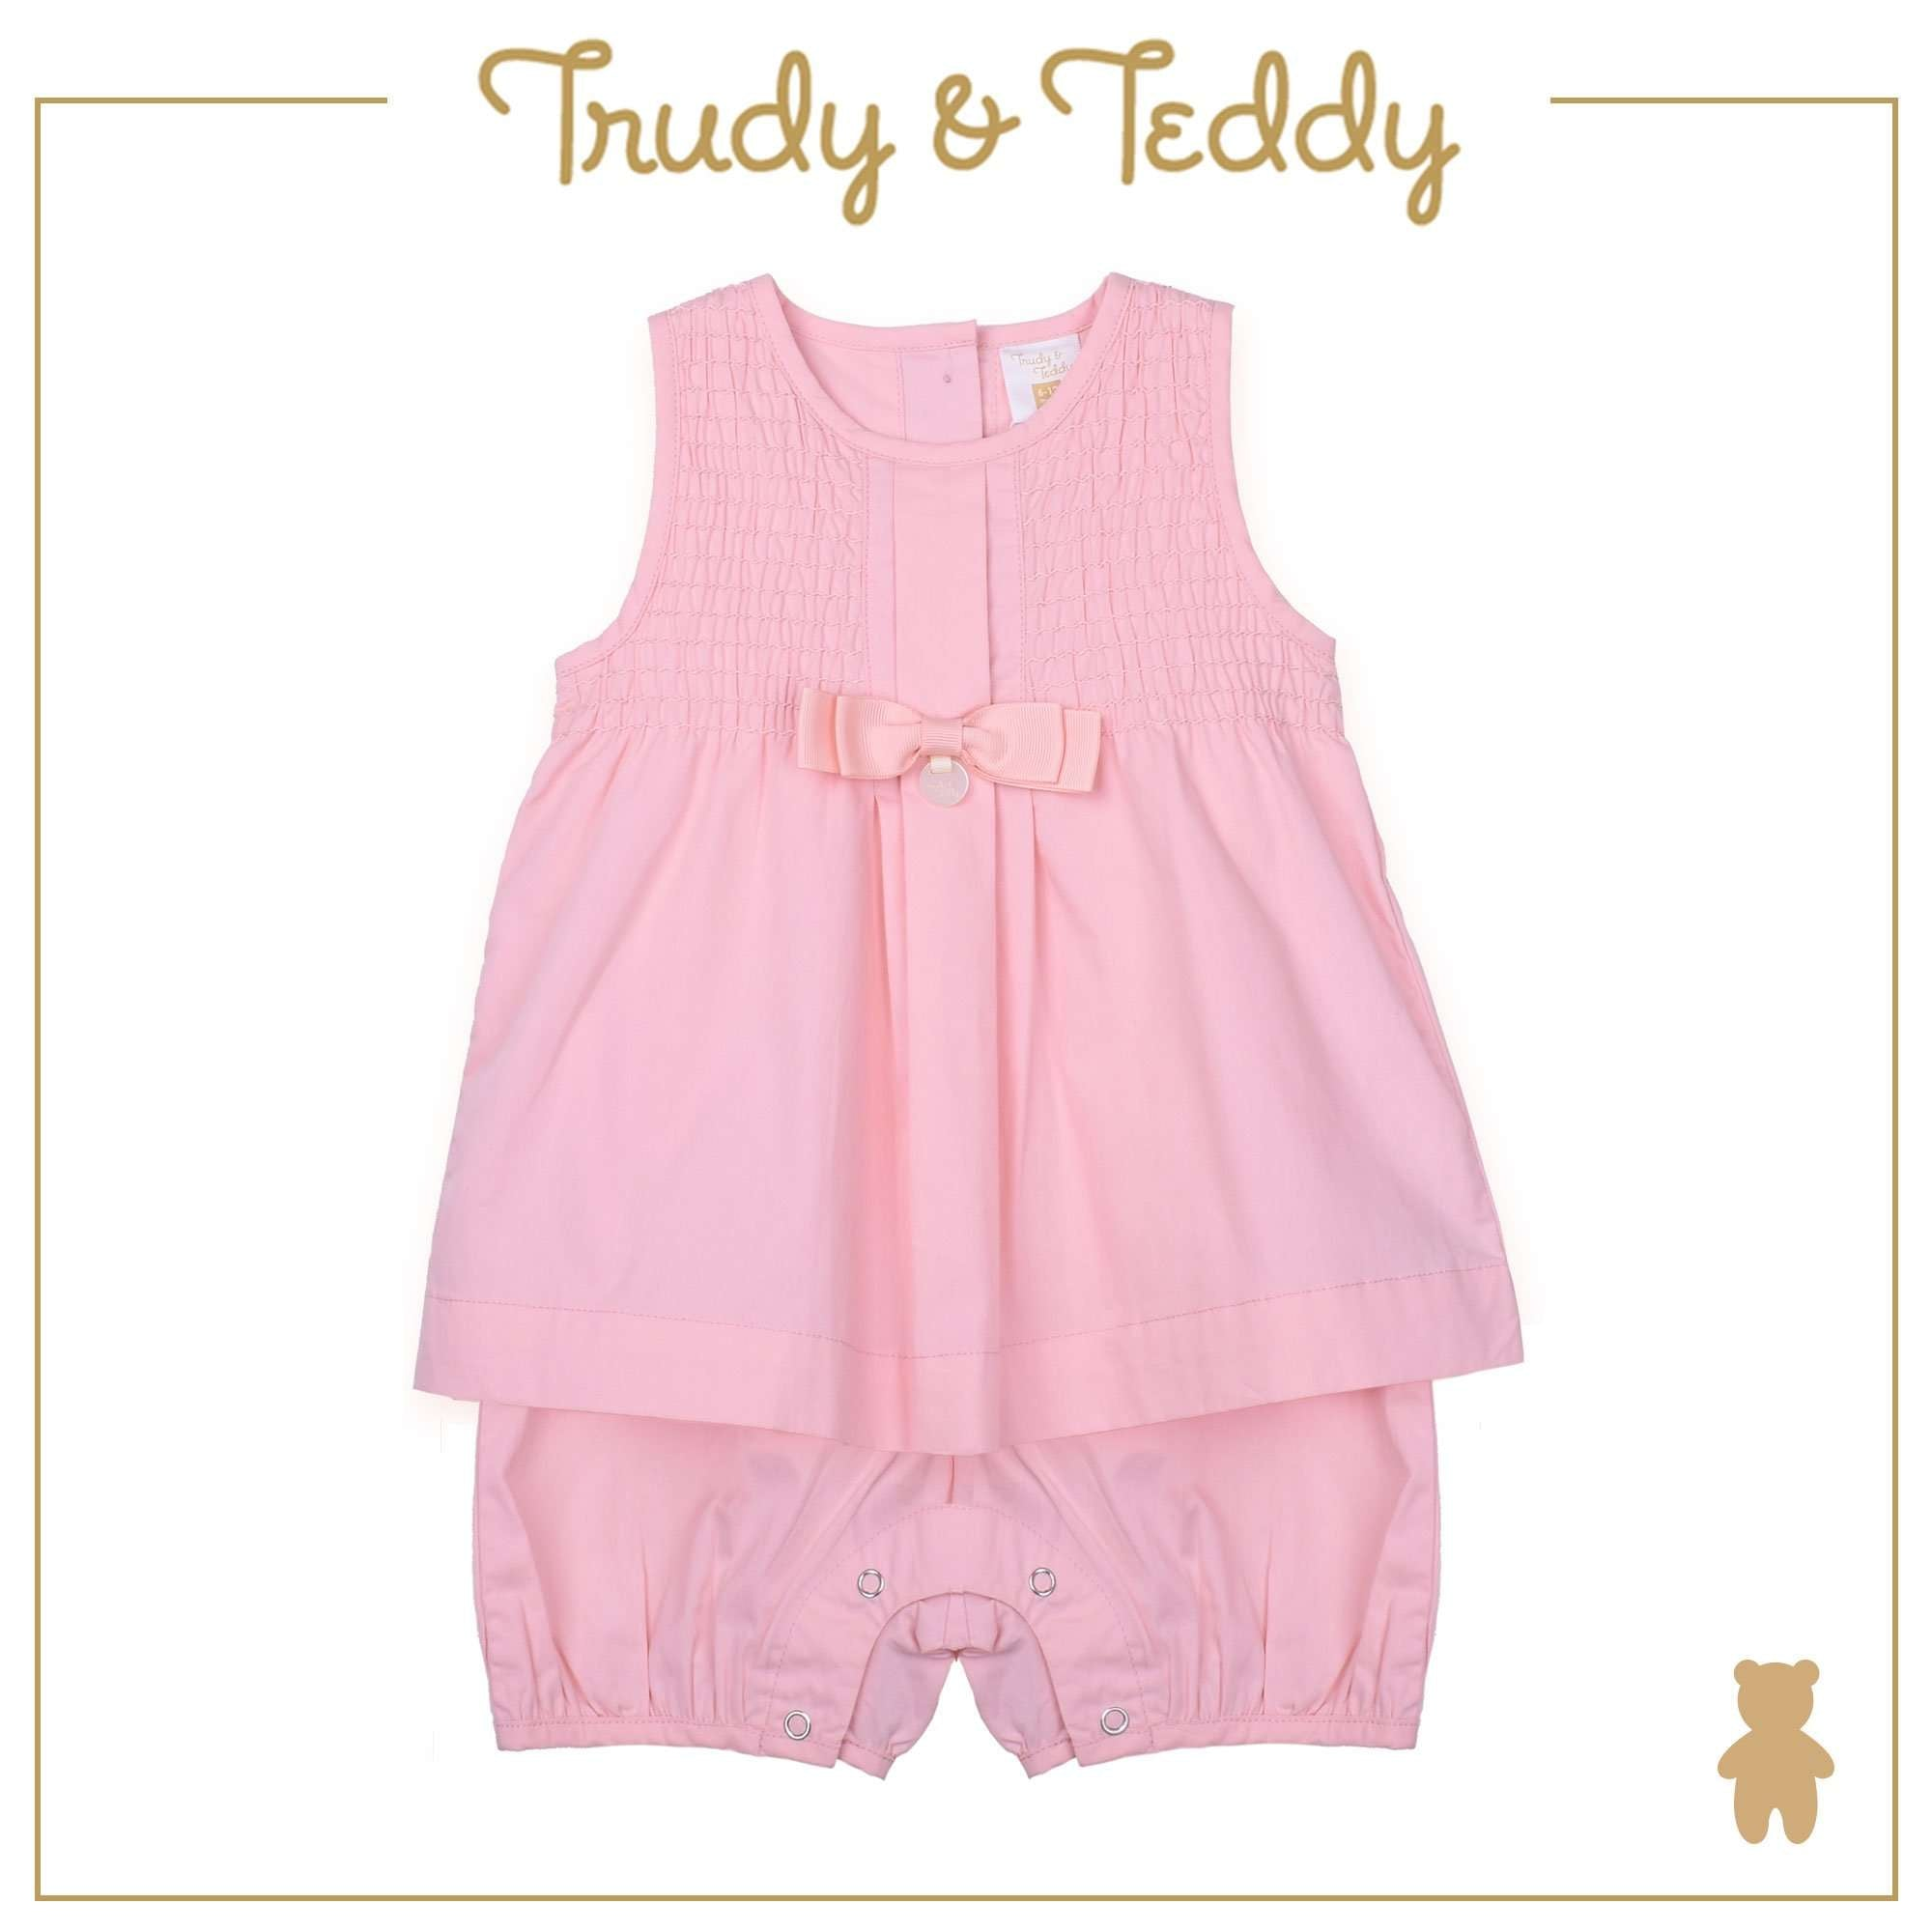 Trudy & Teddy Baby Girl Sleeveless Romper - Light Pink T924002-3555-P1 : Buy Trudy & Teddy online at CMG.MY